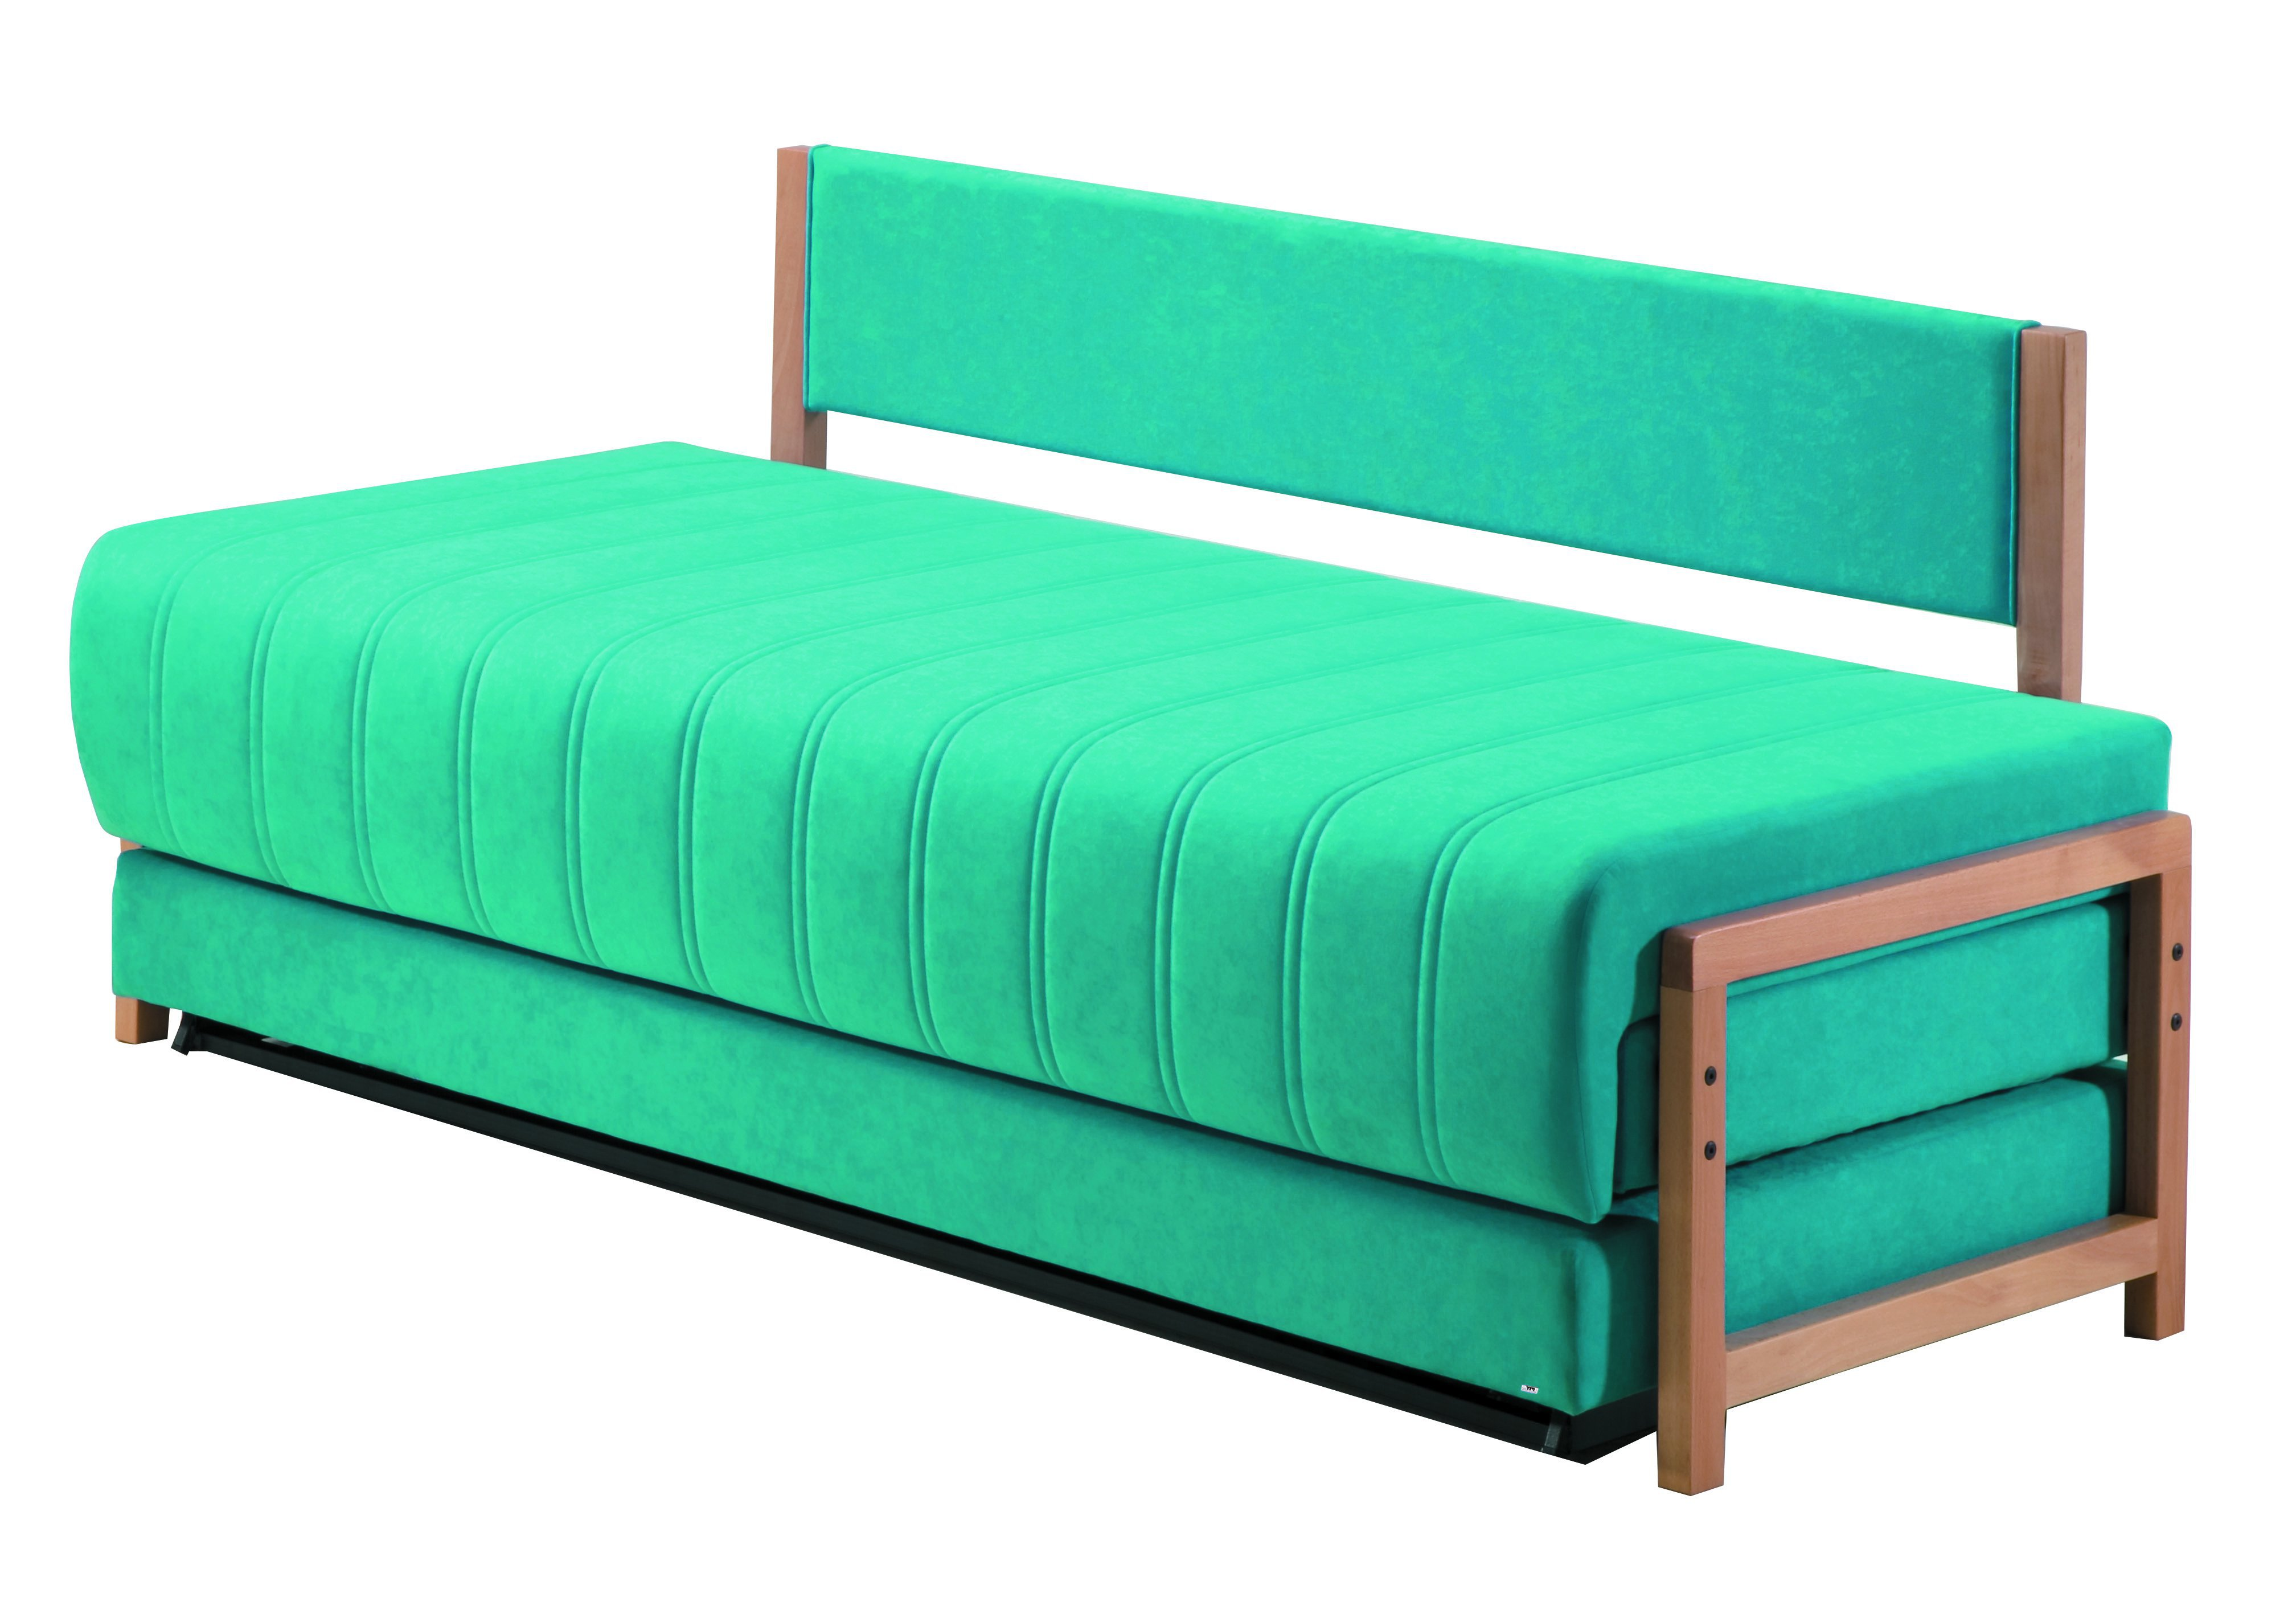 Charmant Elegant Double Bed Size Sleeper Sofa 34 Sofa Table Ideas With Double Bed Size  Sleeper Sofa